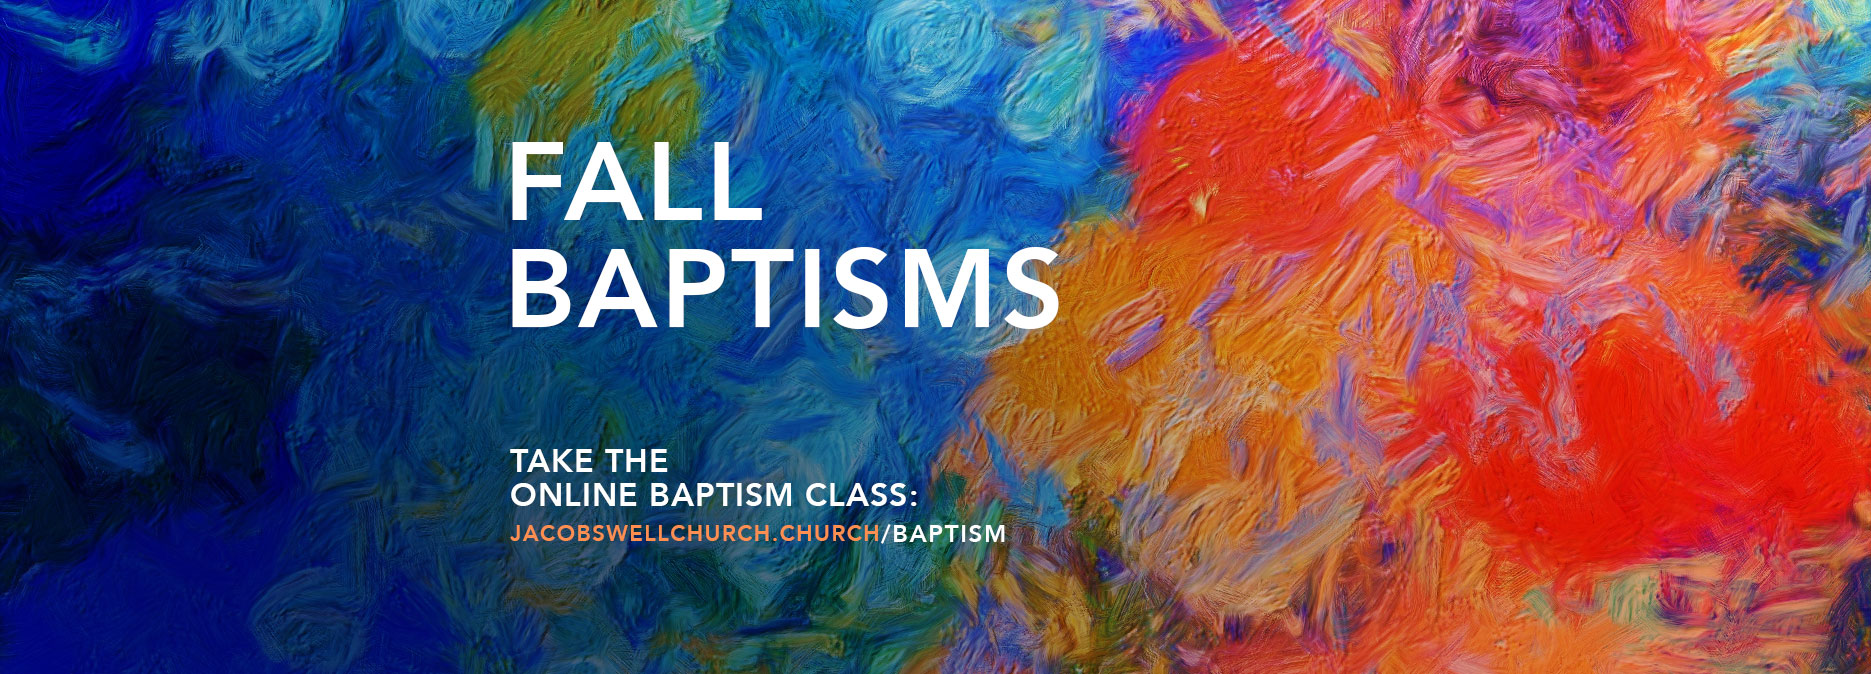 fall baptisms